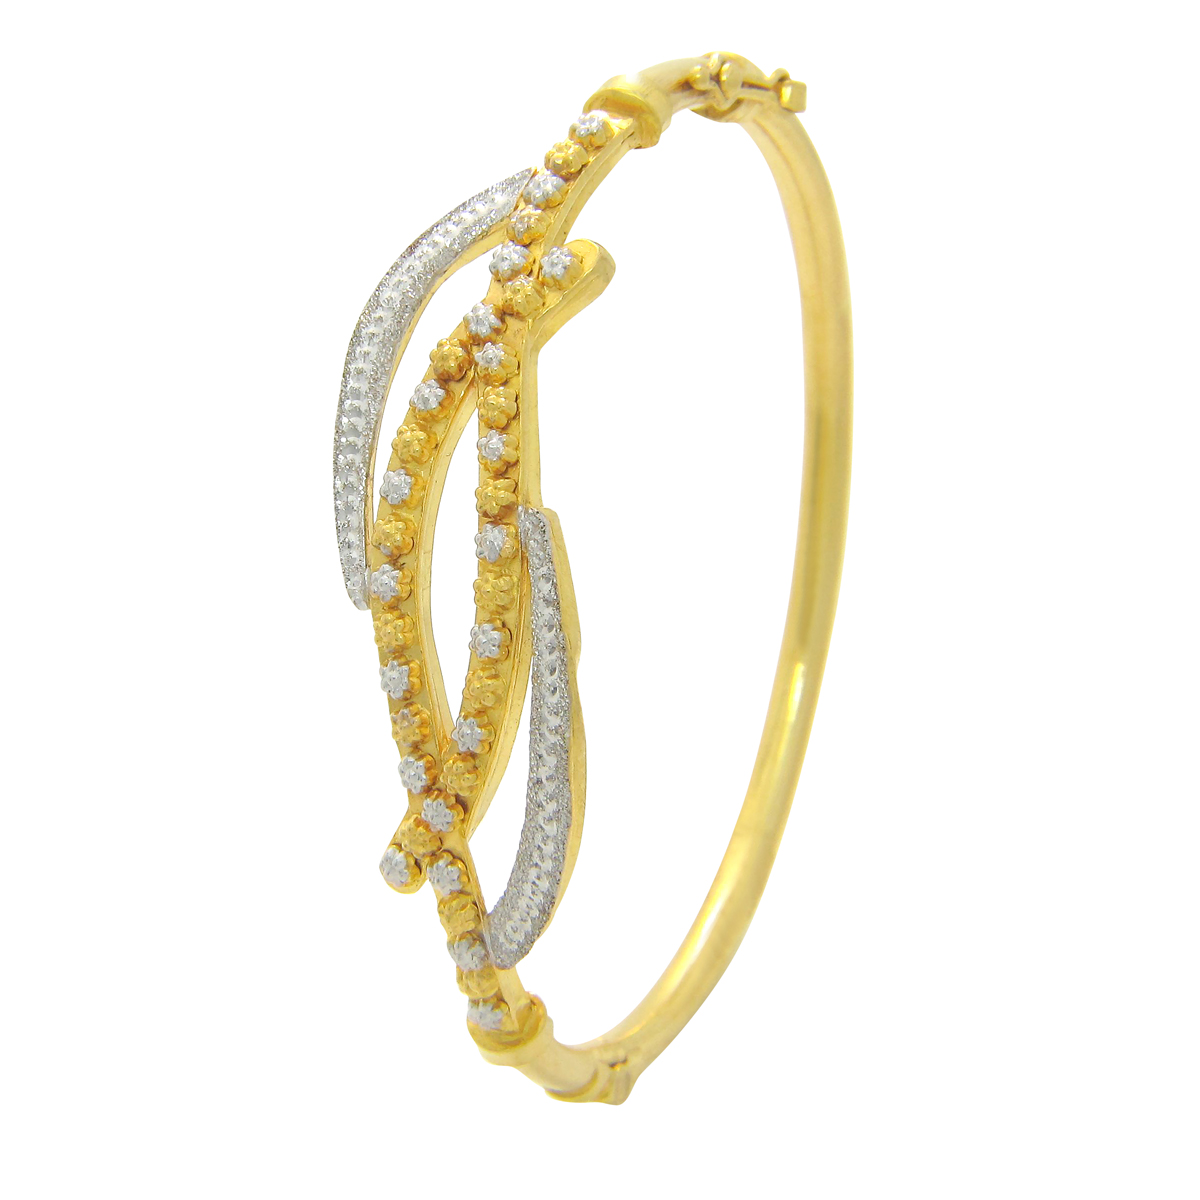 Popley 22Kt Gold Bandhan Bangle A86